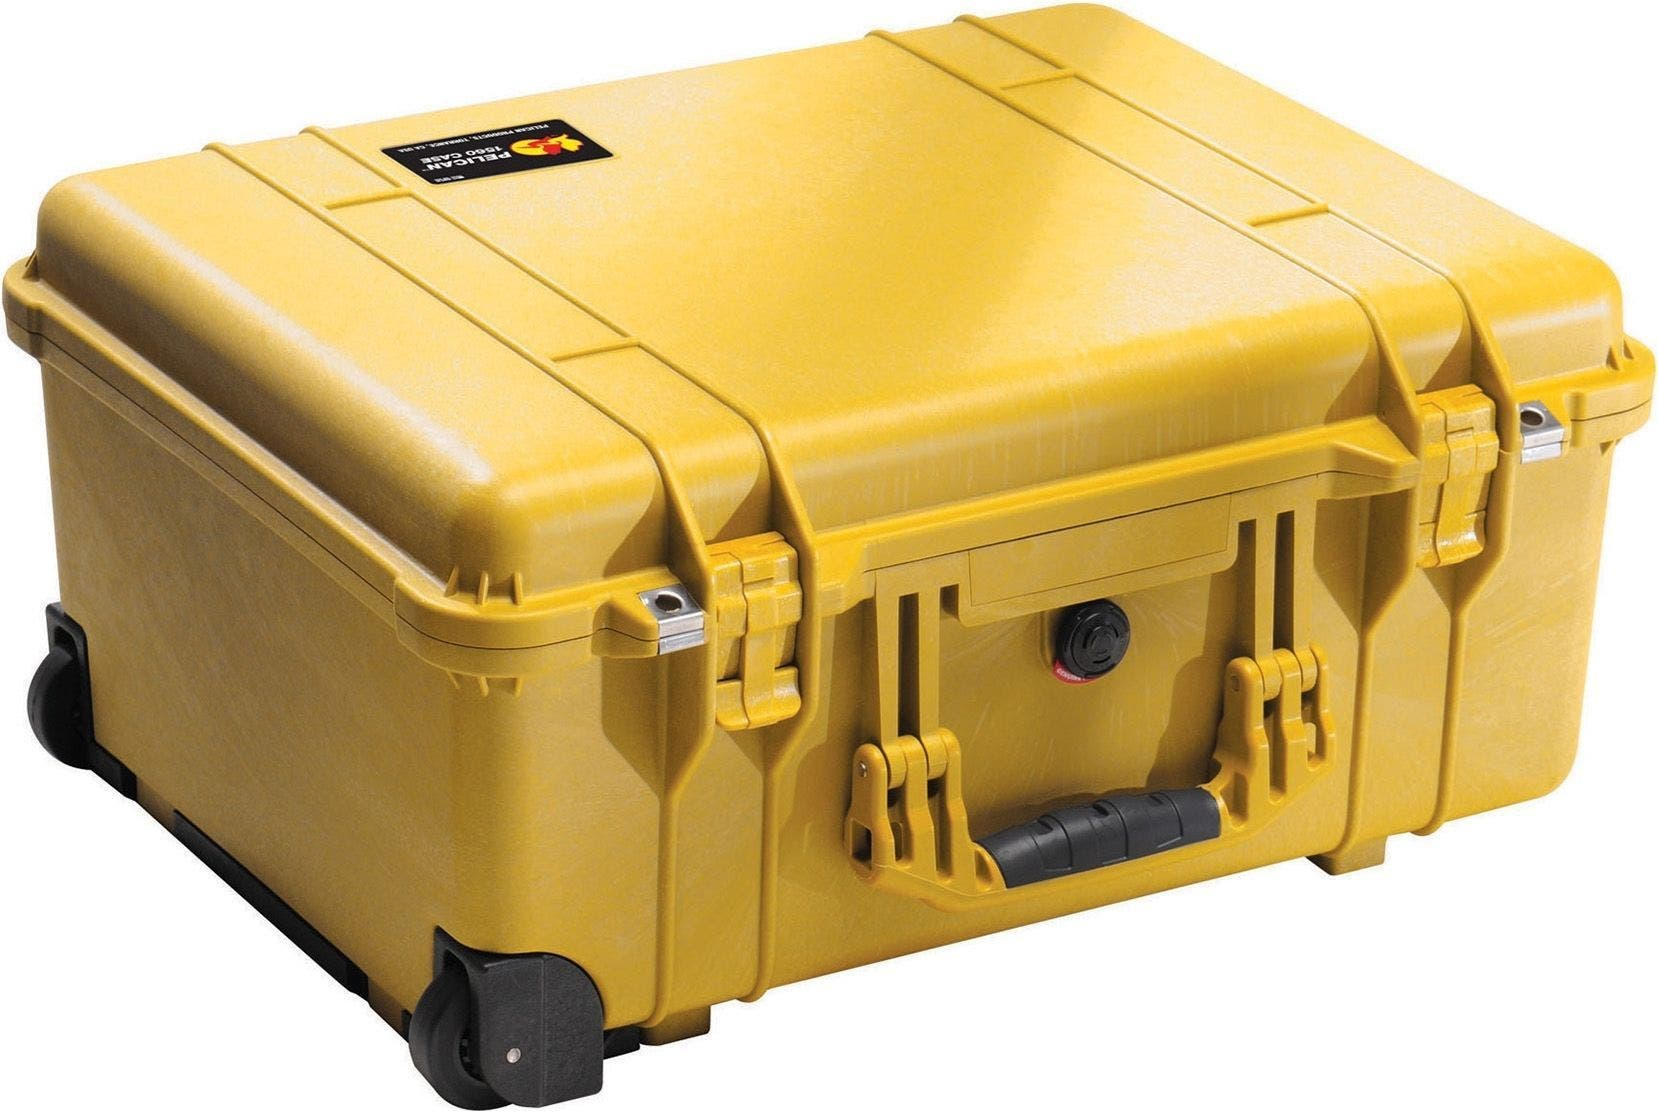 Pelican 1560 Yellow Case with Papped Dividers